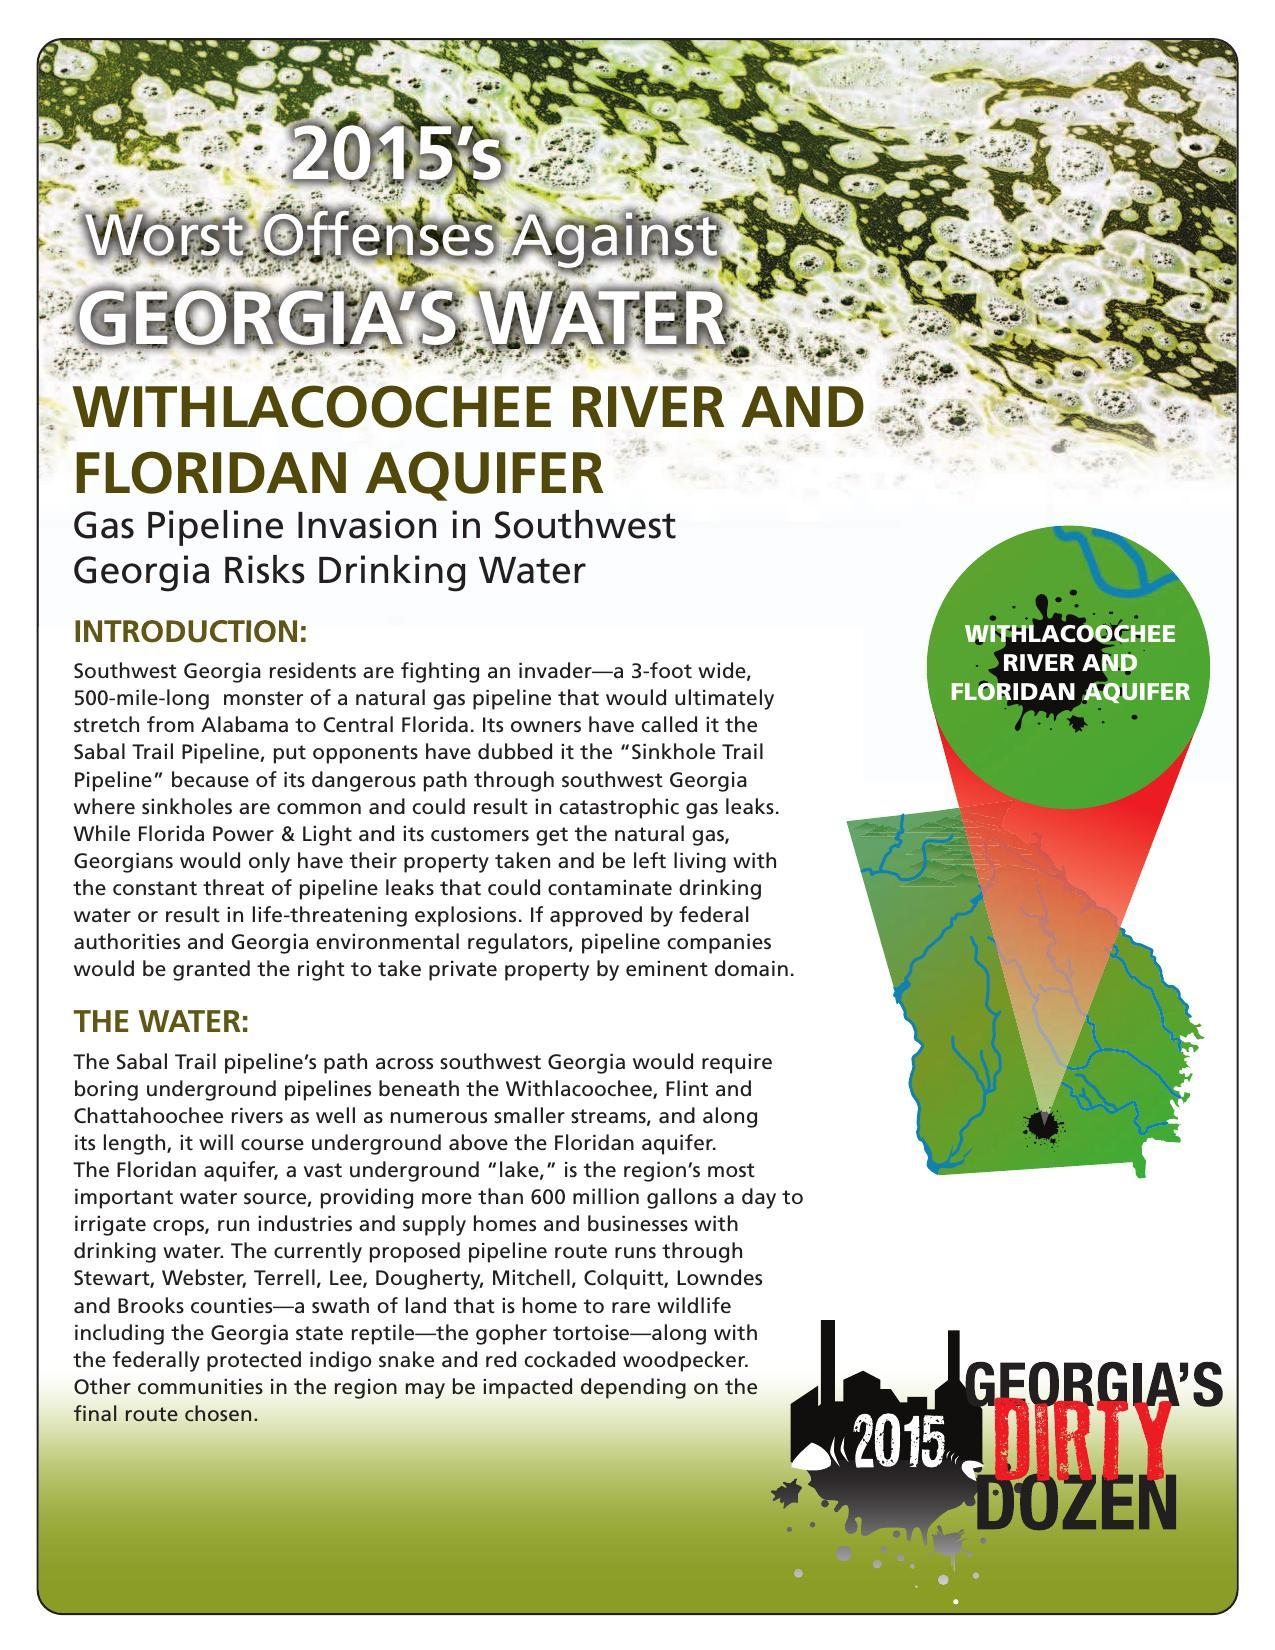 1275x1650 Invading Sabal Trail, Withlacoochee River, in Gas Pipeline Invasion in Southwest Georgia Risks Drinking Water, by Georgia Water Coalition, for WWALS.net, 4 November 2015